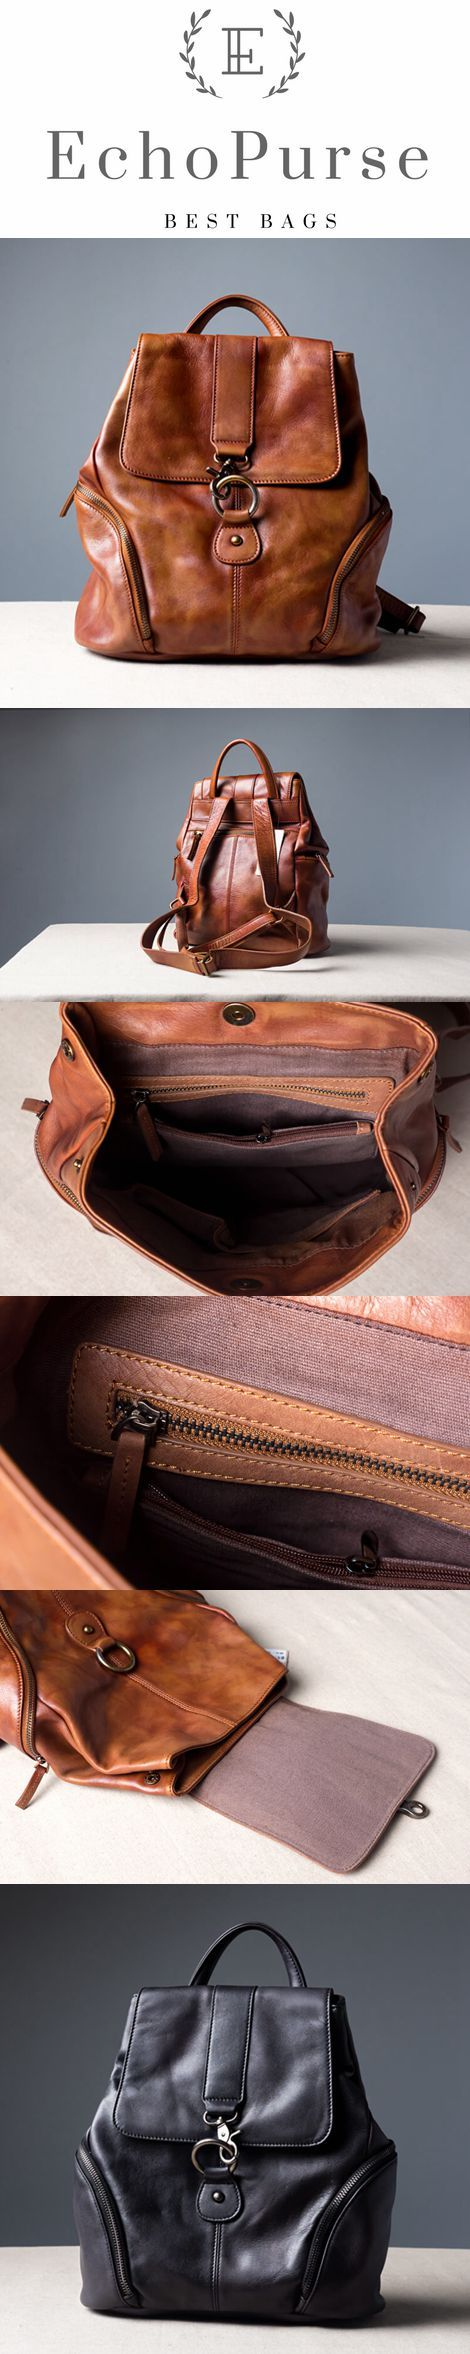 Women's Backpack, Top Grain Leather Handbag, Soft Leather Shoulder Bag SD438